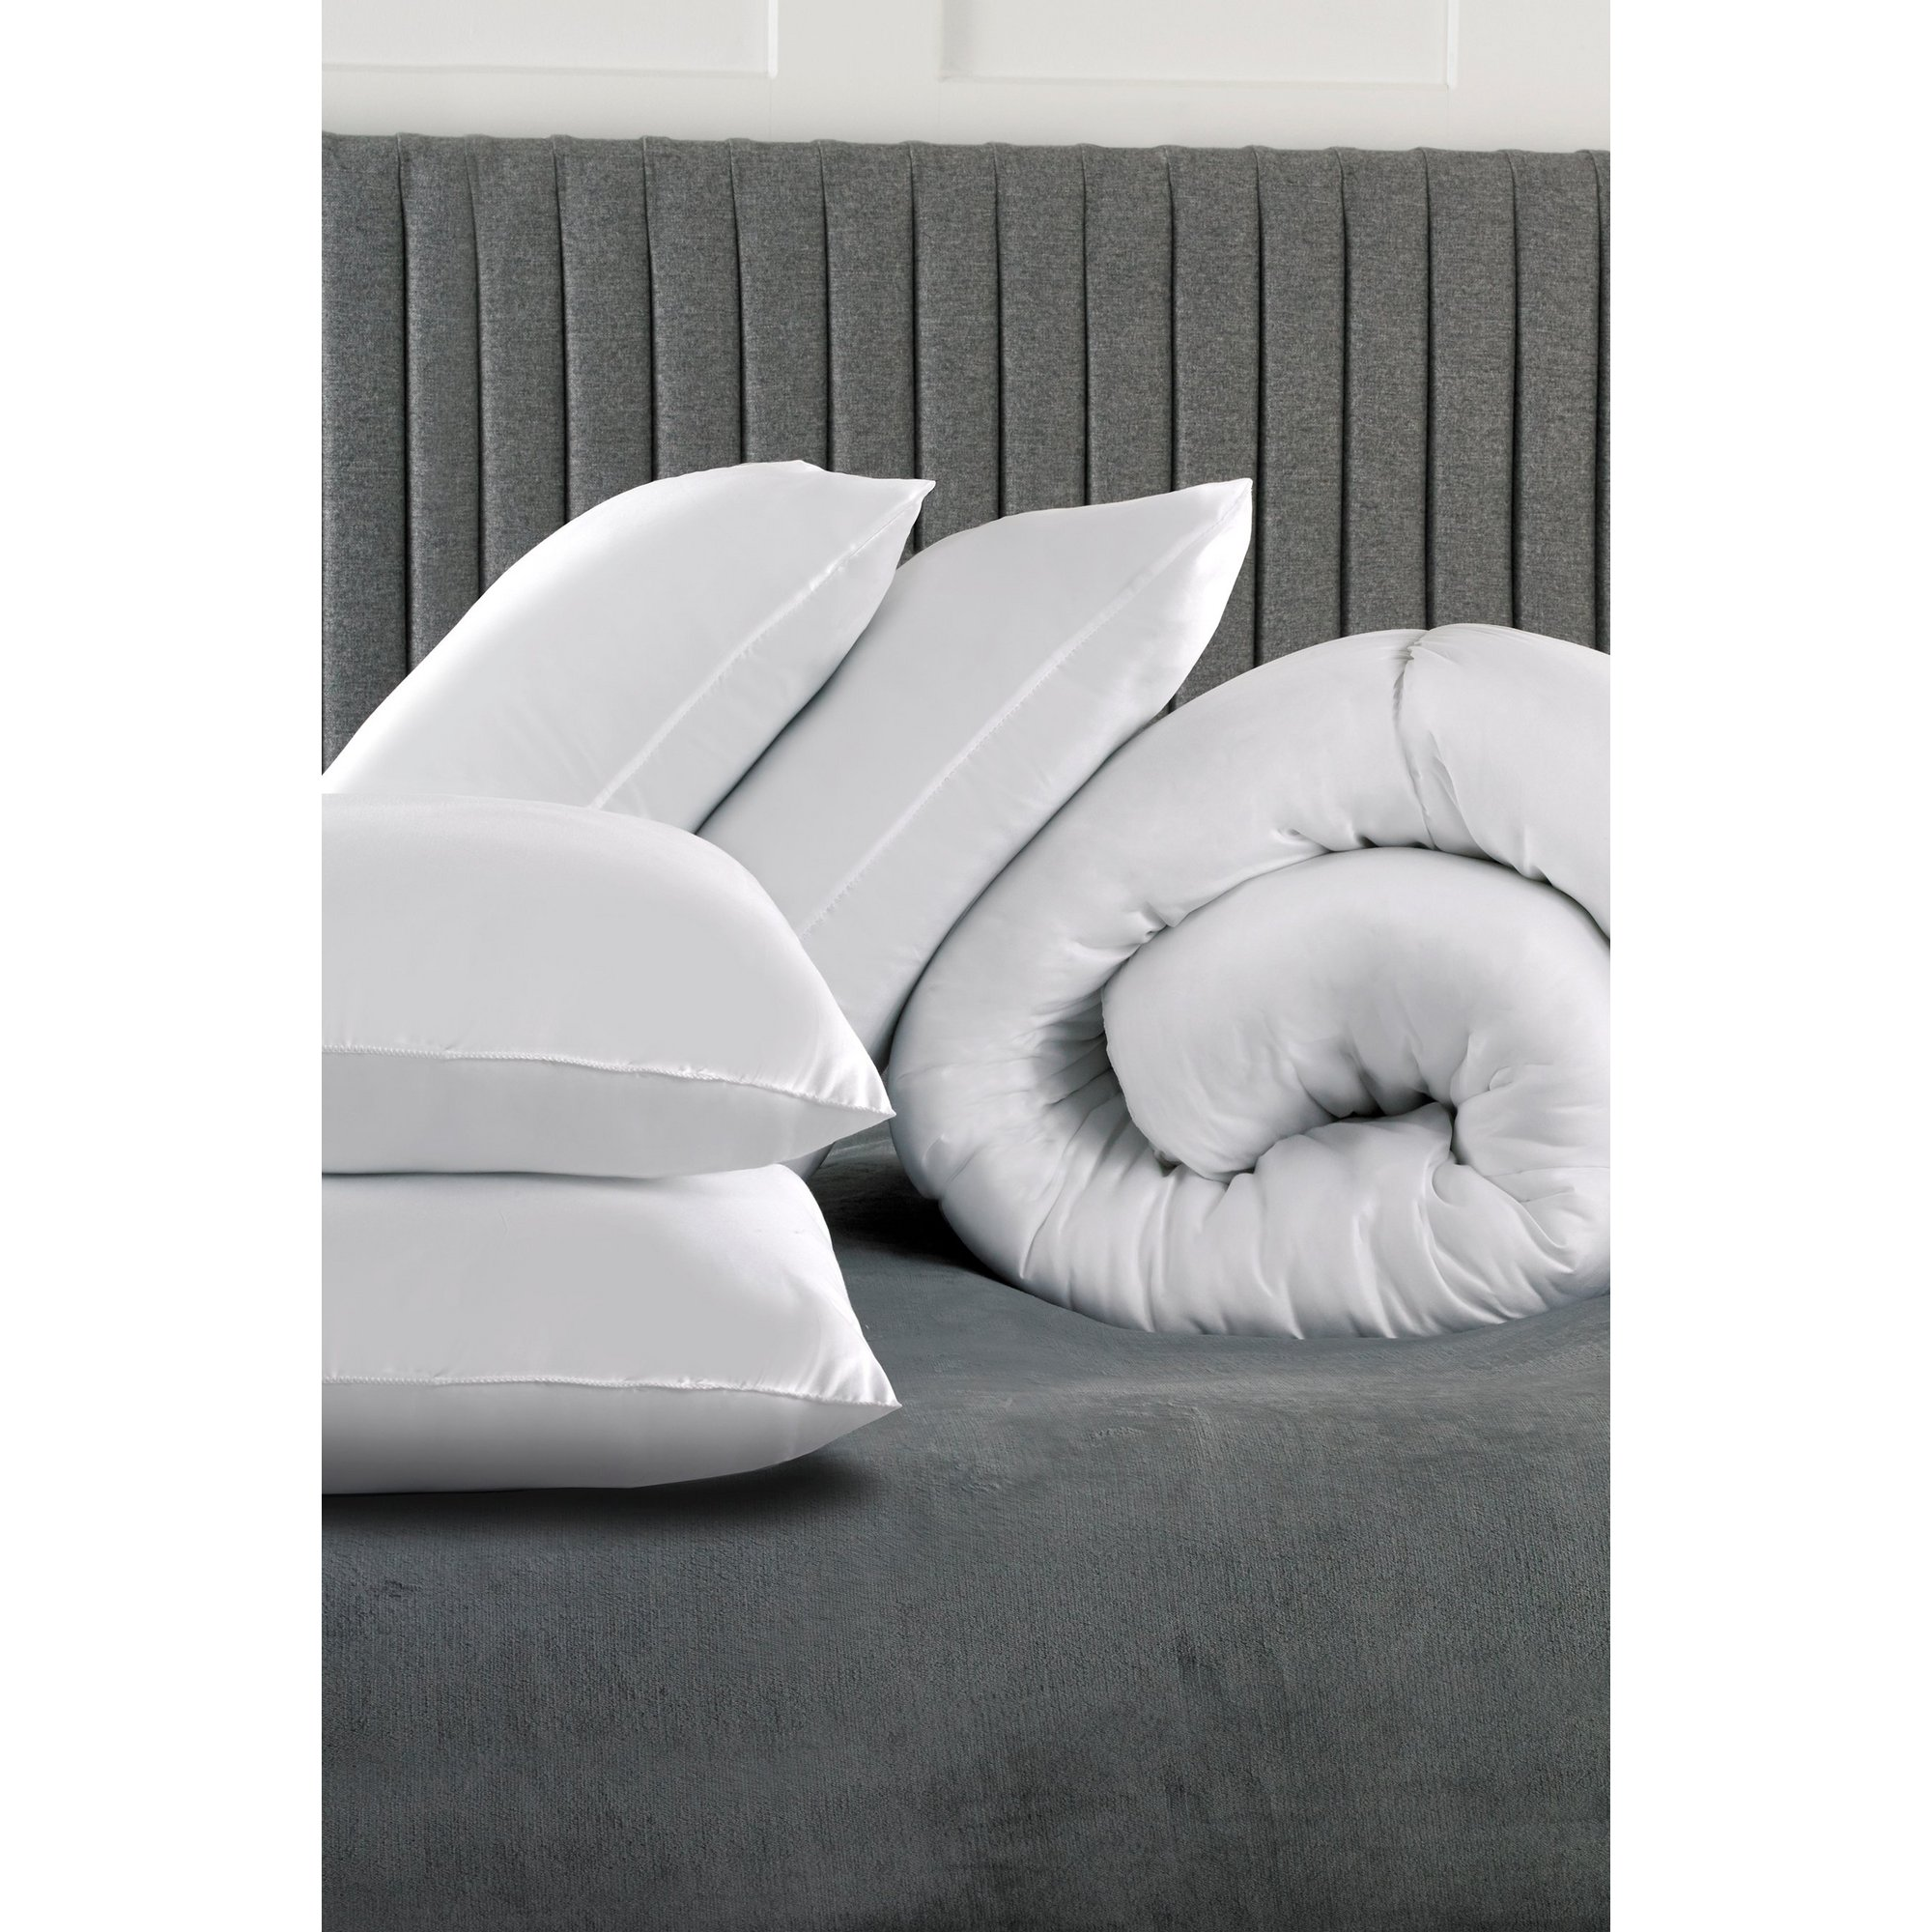 Image of Relax 4.5 Tog Duvet and 4 Pillows Bundle